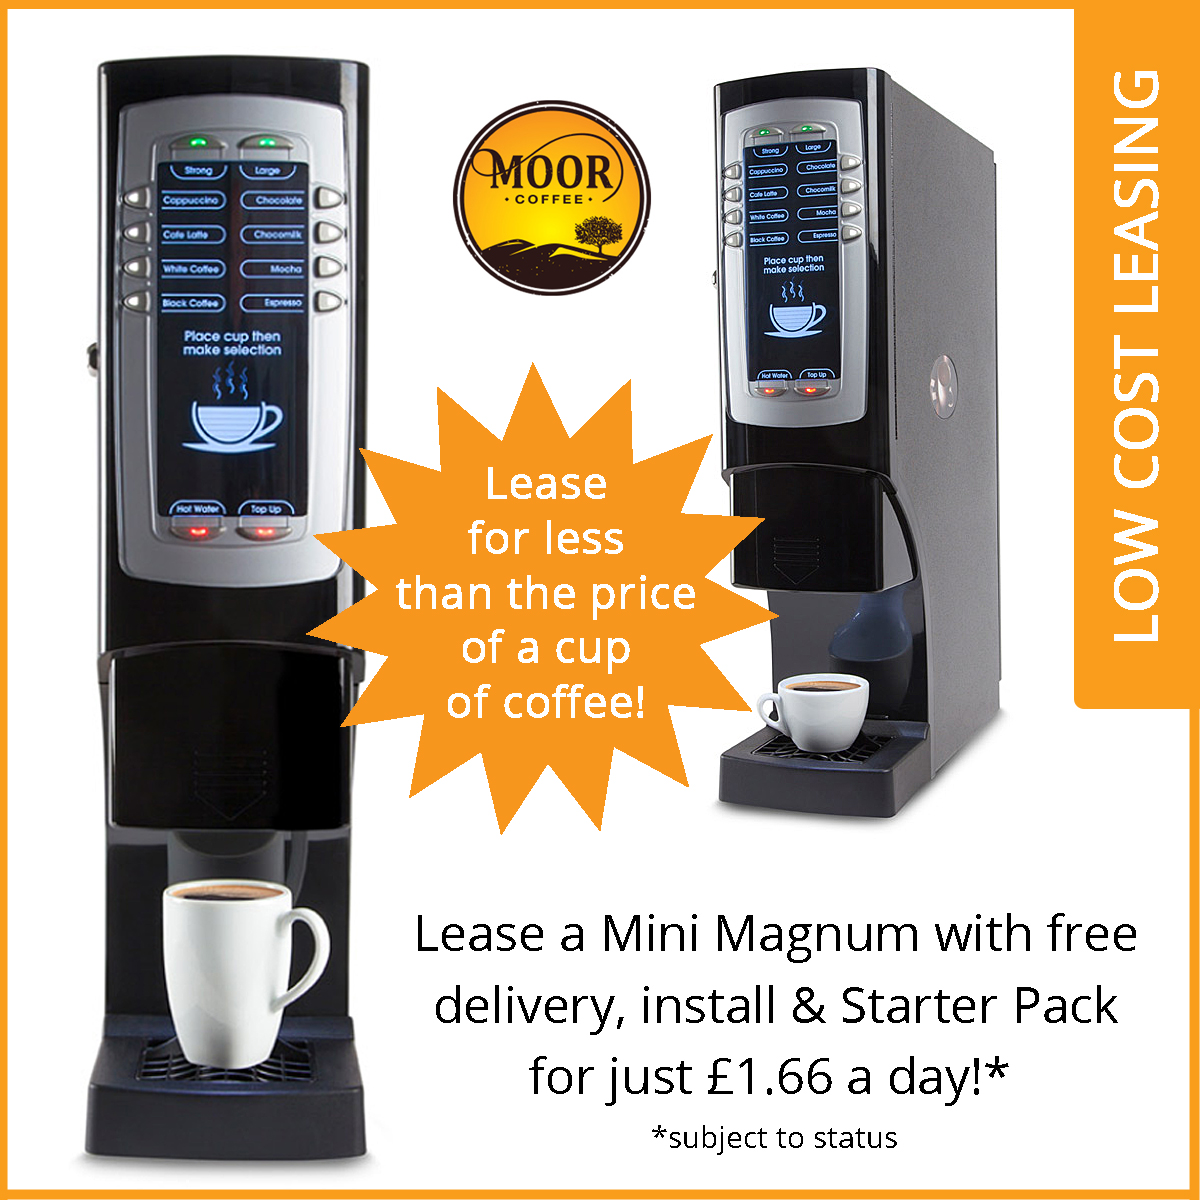 mini magnum lease offer